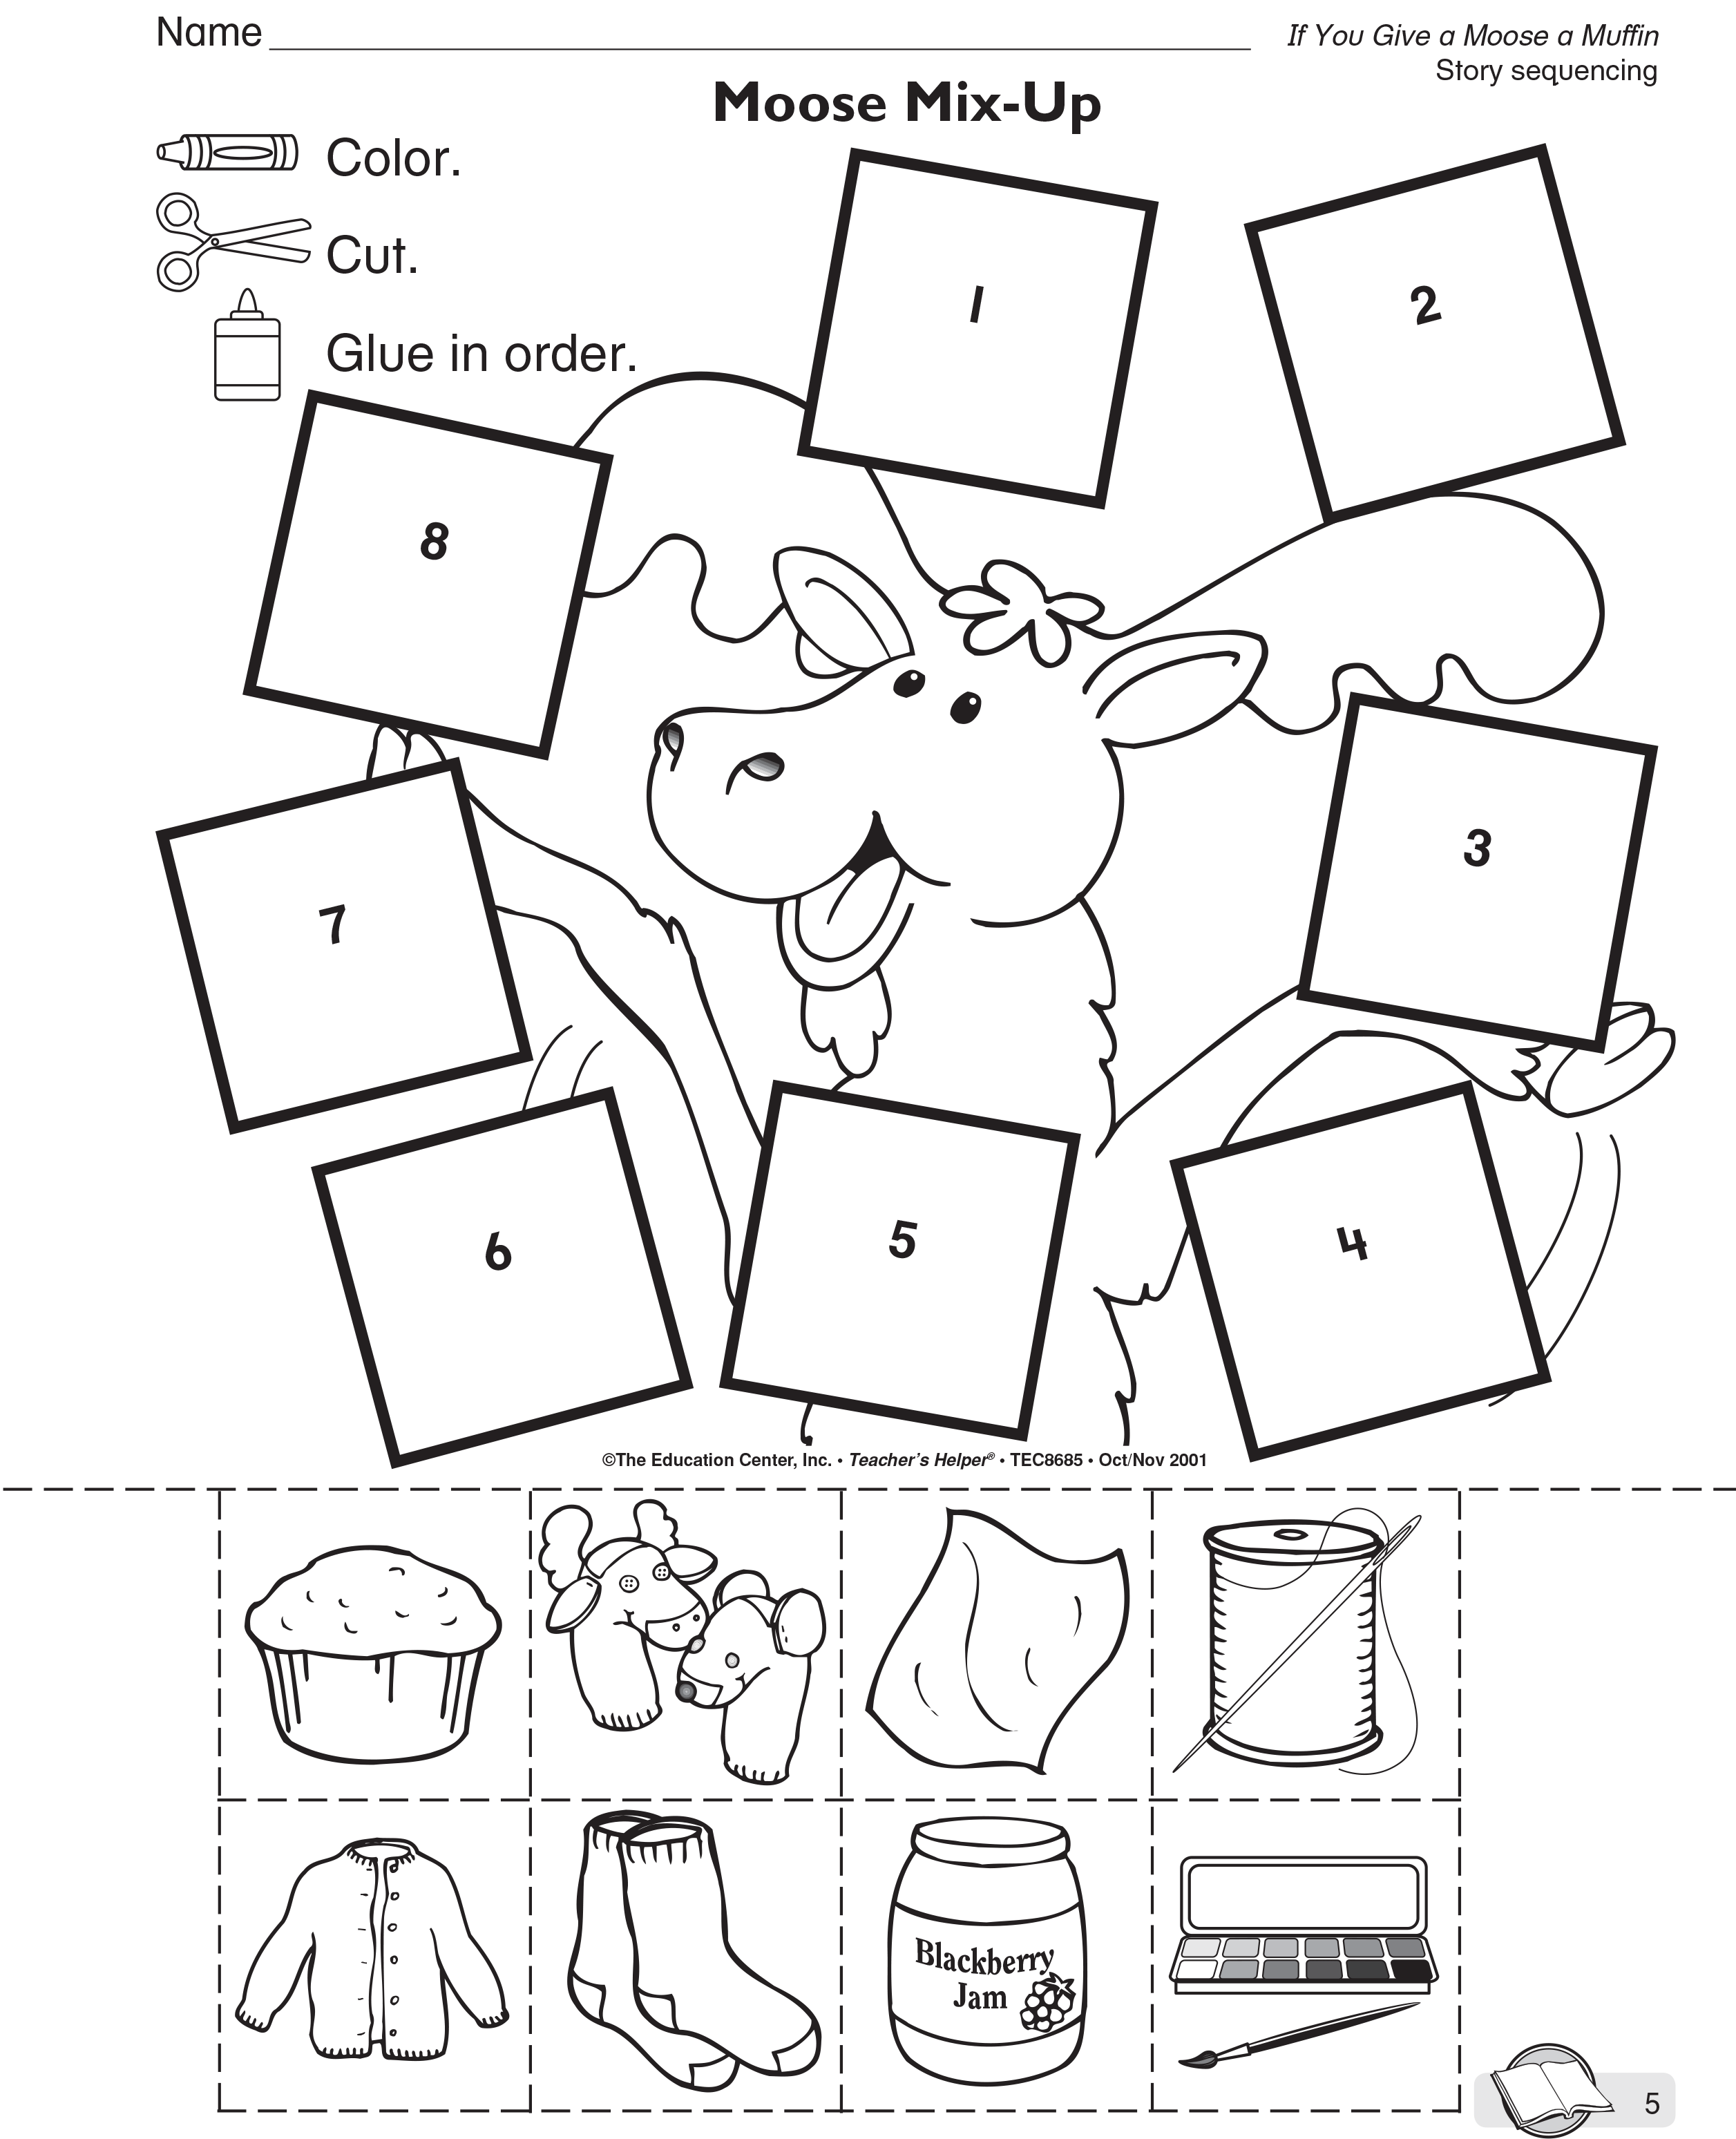 If You Give A Moose A Muffin Activity Sheet